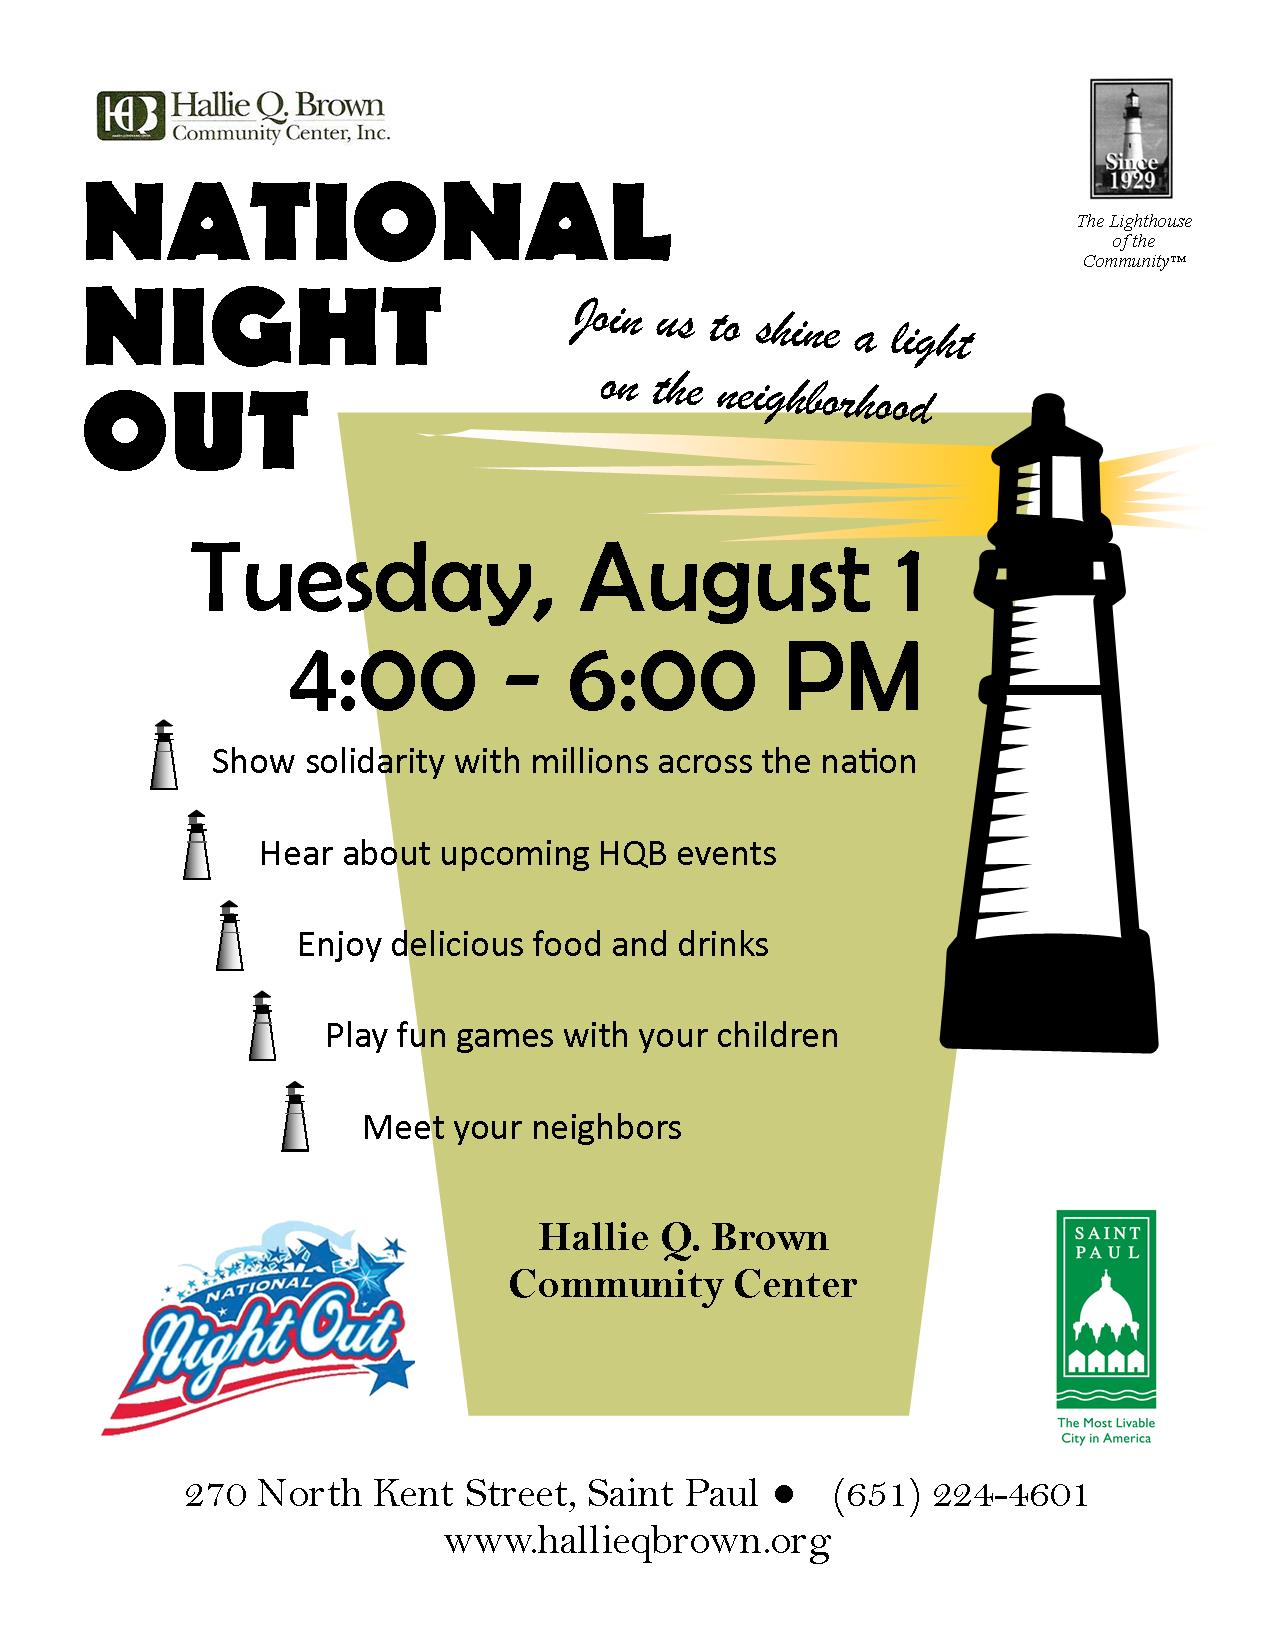 Hallie Q Brown National Night Out 2017